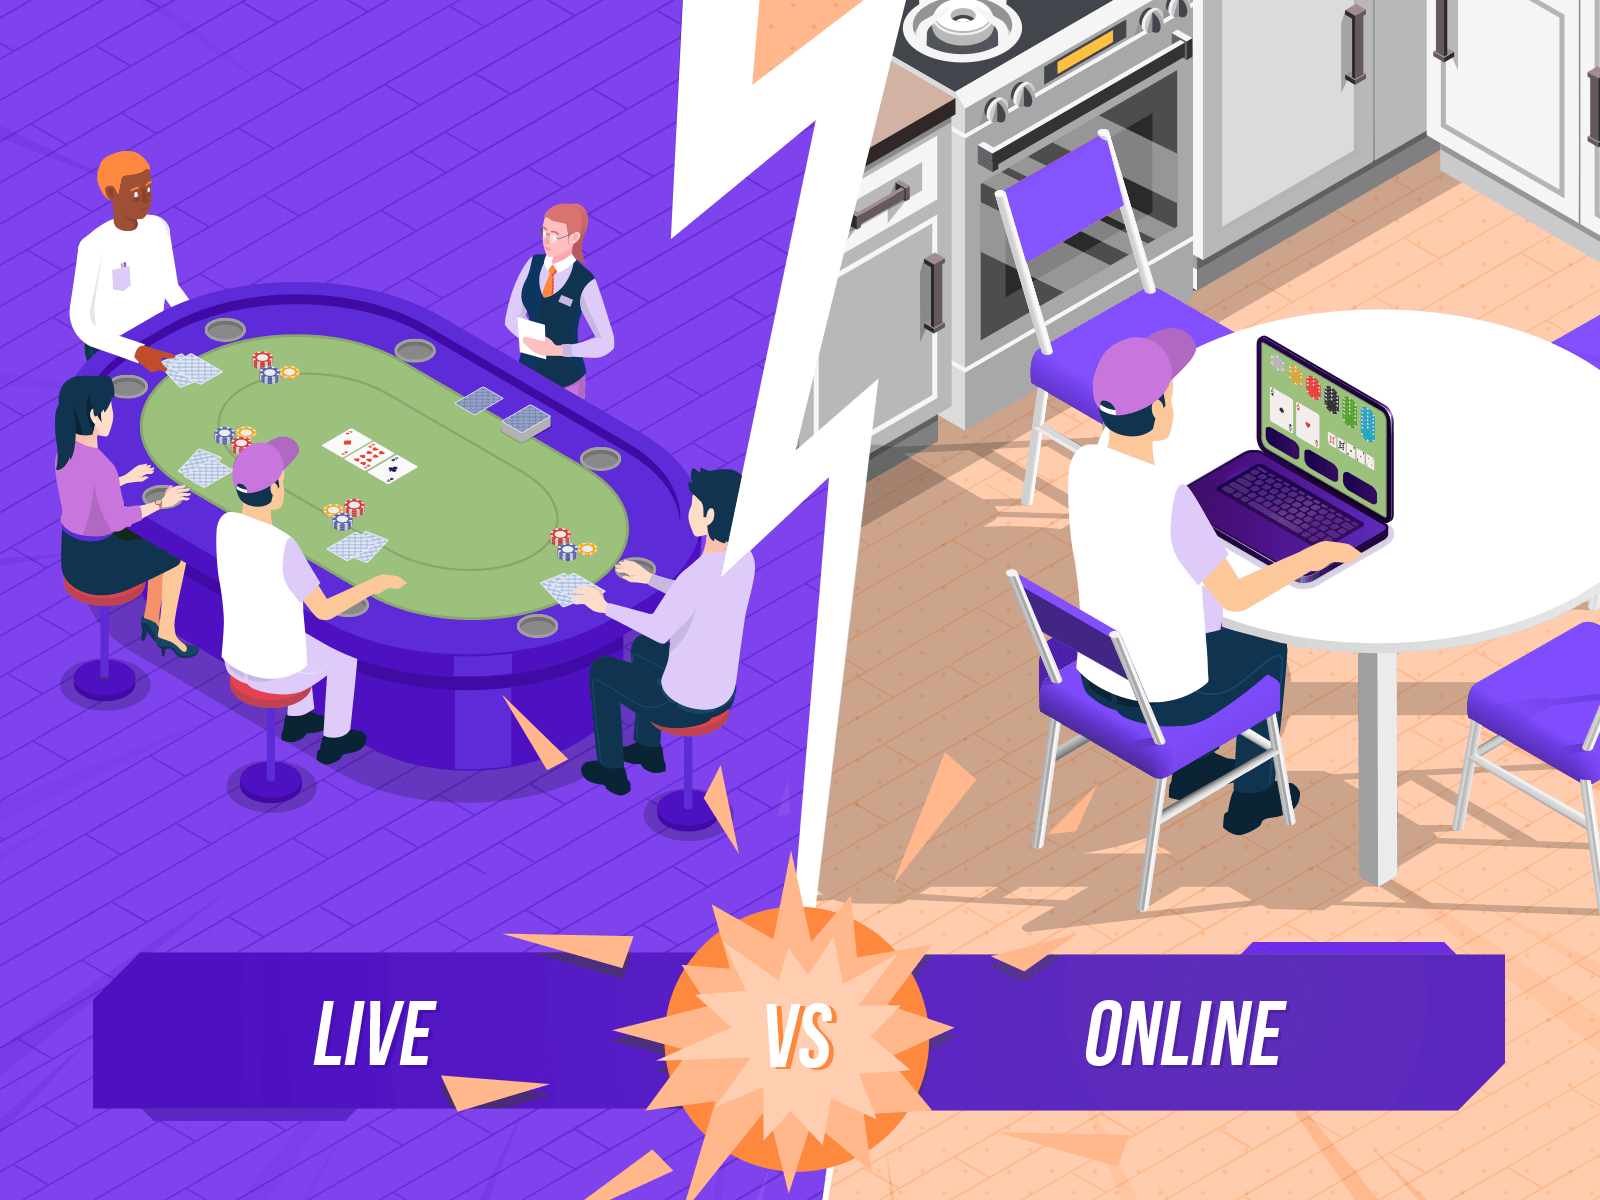 Online Poker Vs Live Poker Games Top 9 Differences